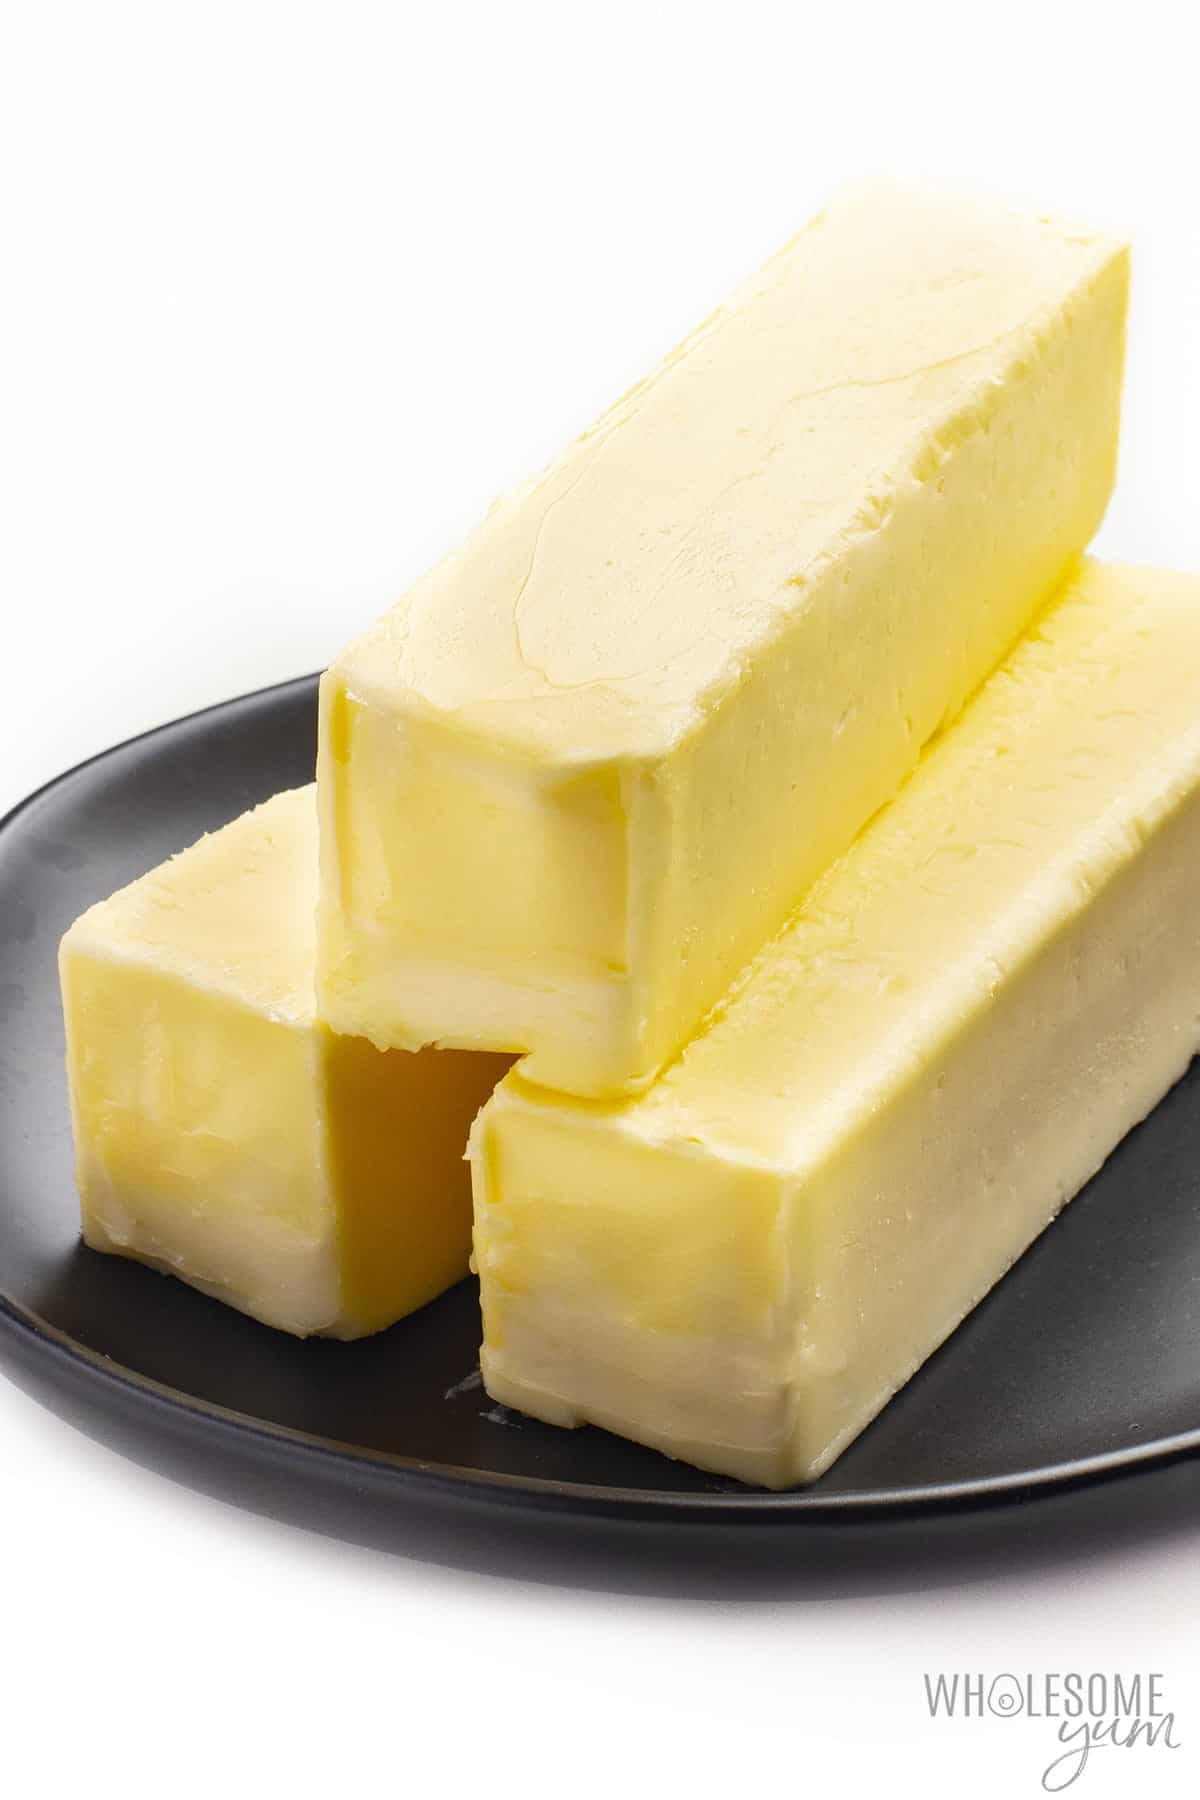 Is butter keto friendly? These sticks of fresh butter are naturally low in carbs.